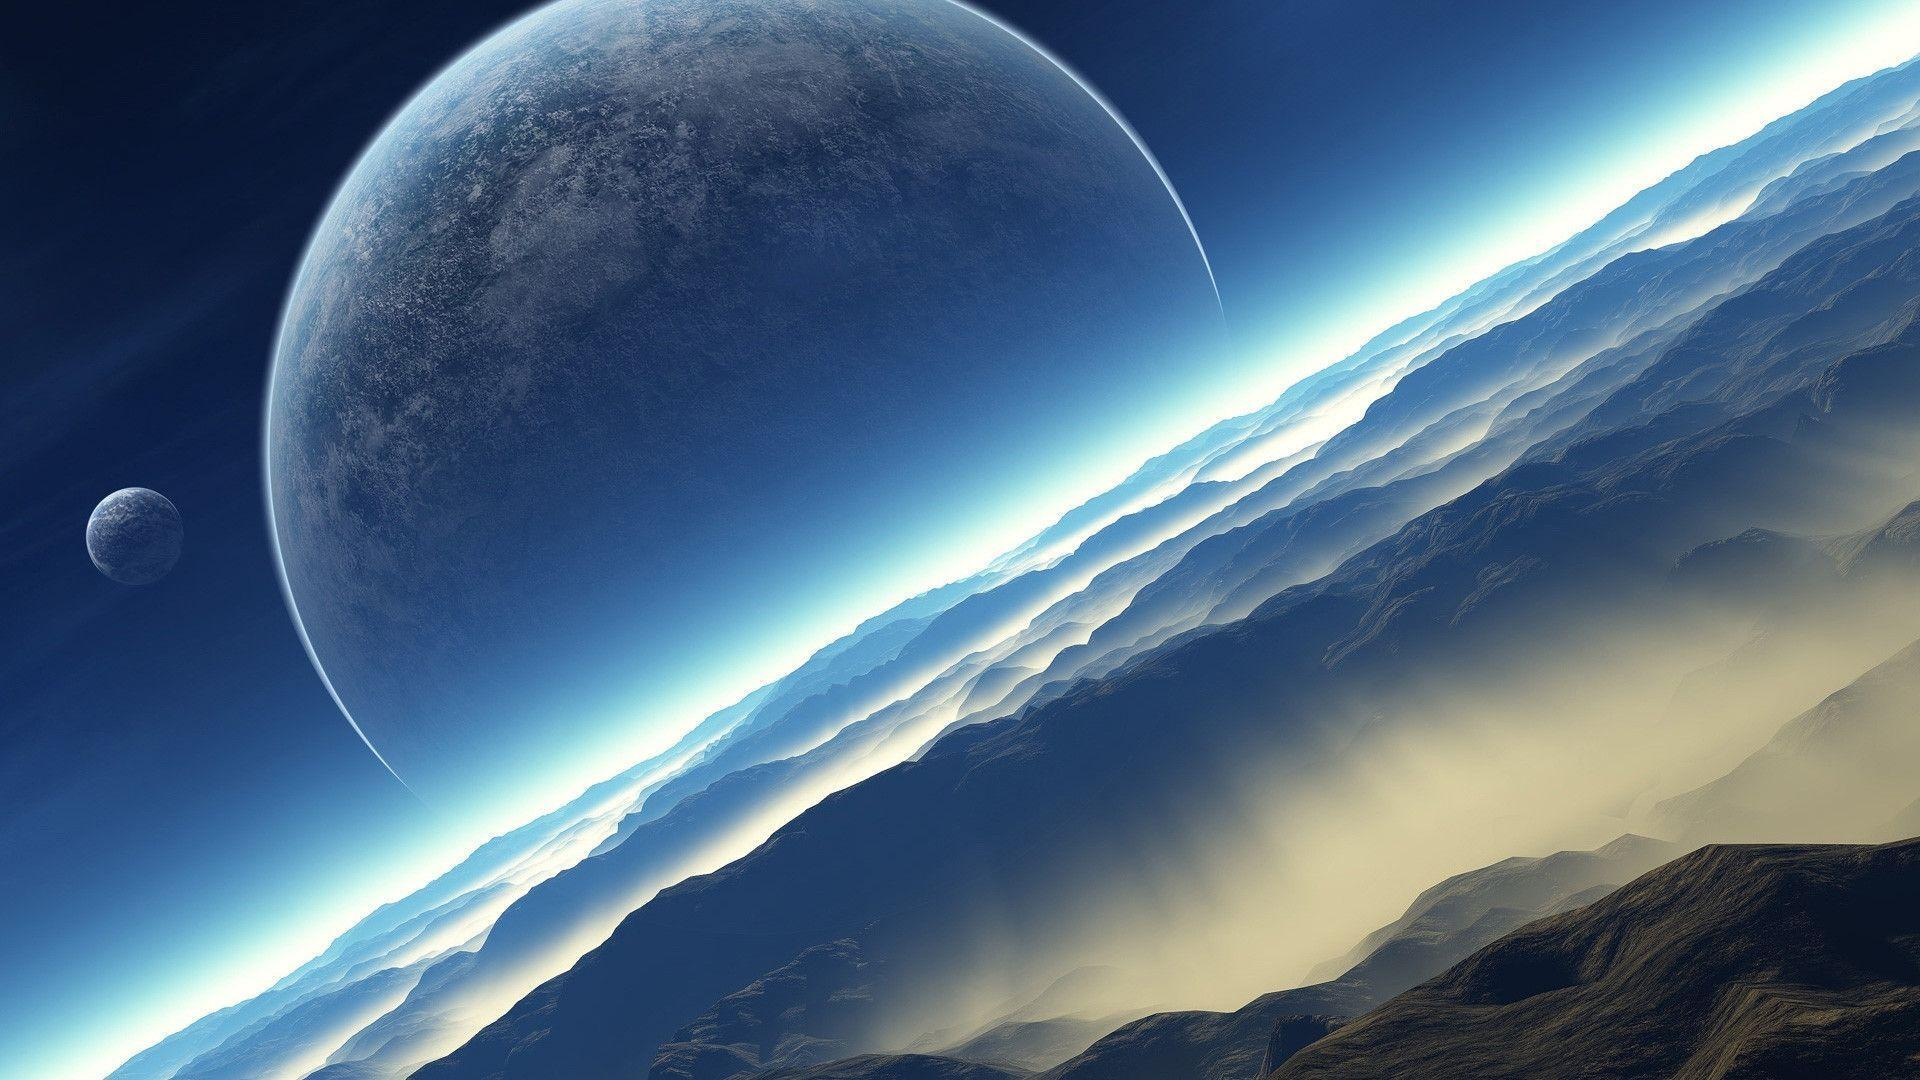 Space HD Wallpapers p Wallpaper